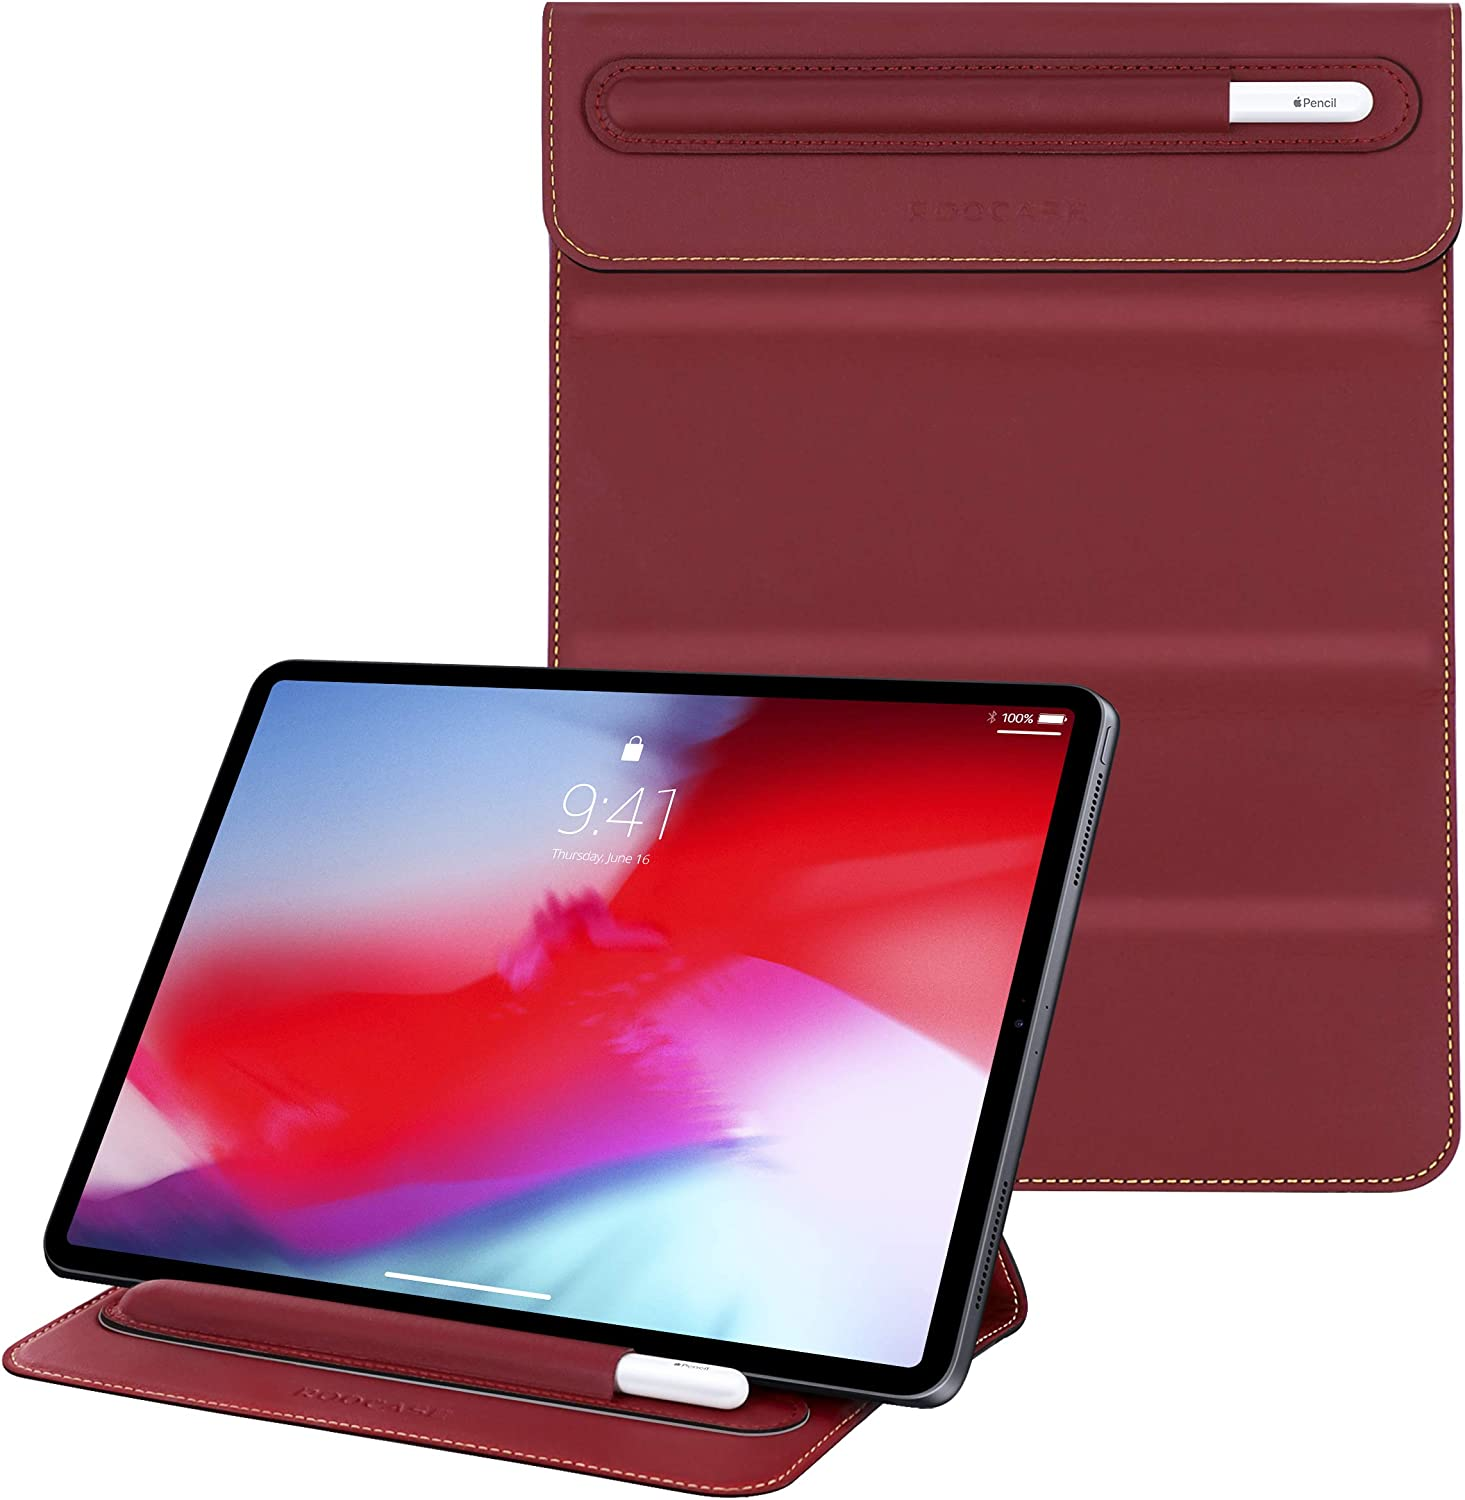 rooCASE Olvera iPad Sleeve with for SEAL limited product Stand 10.2 New 9. Las Vegas Mall